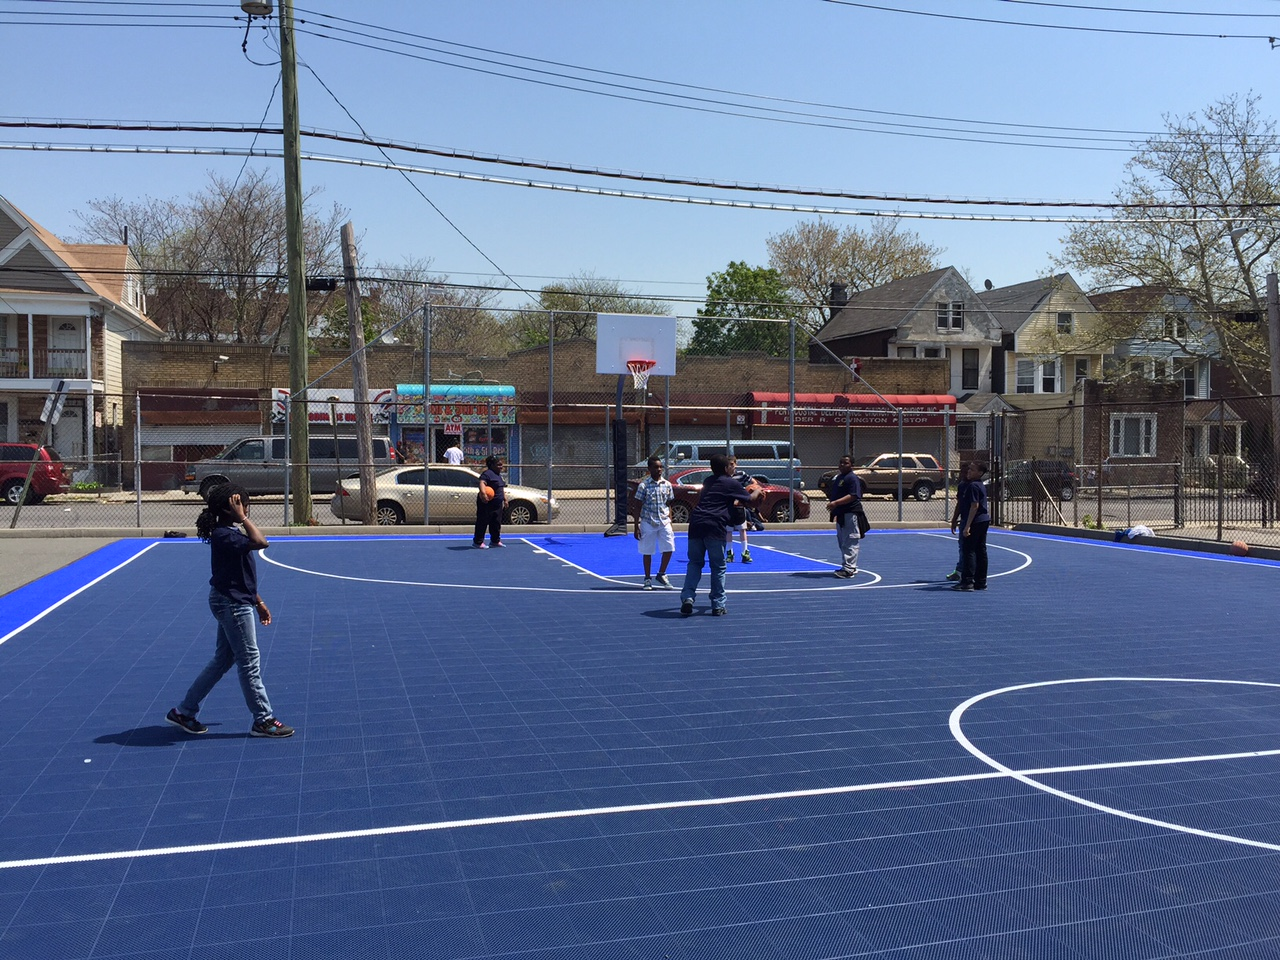 Nyc Basketball Court On Good Morning America Carter 39 S